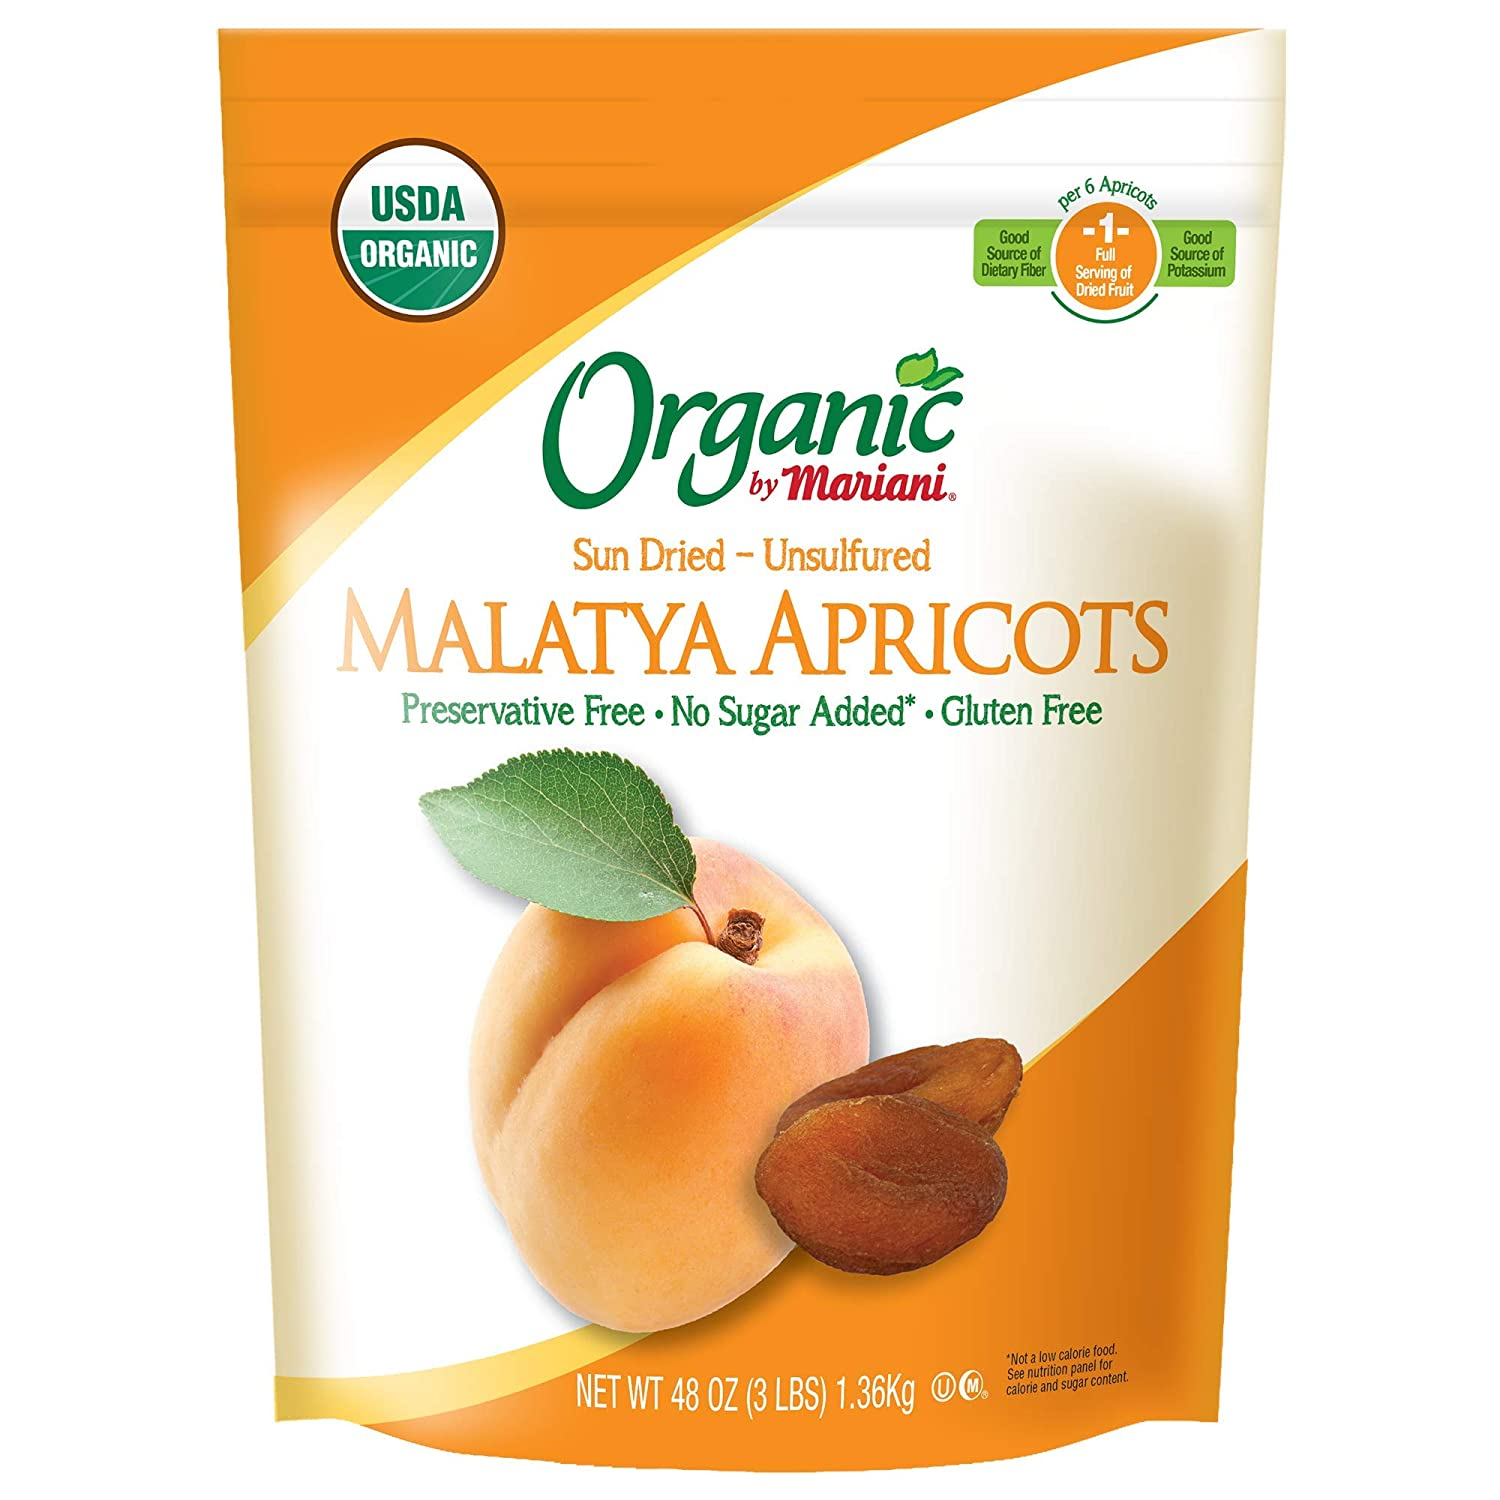 Organic by Mariani - Organic Malatya Apricots (48oz - Pack of 1) - Unsulfured, No Sugar Added, Good Source of Vitamin E - Healthy Snack for Kids & Adults